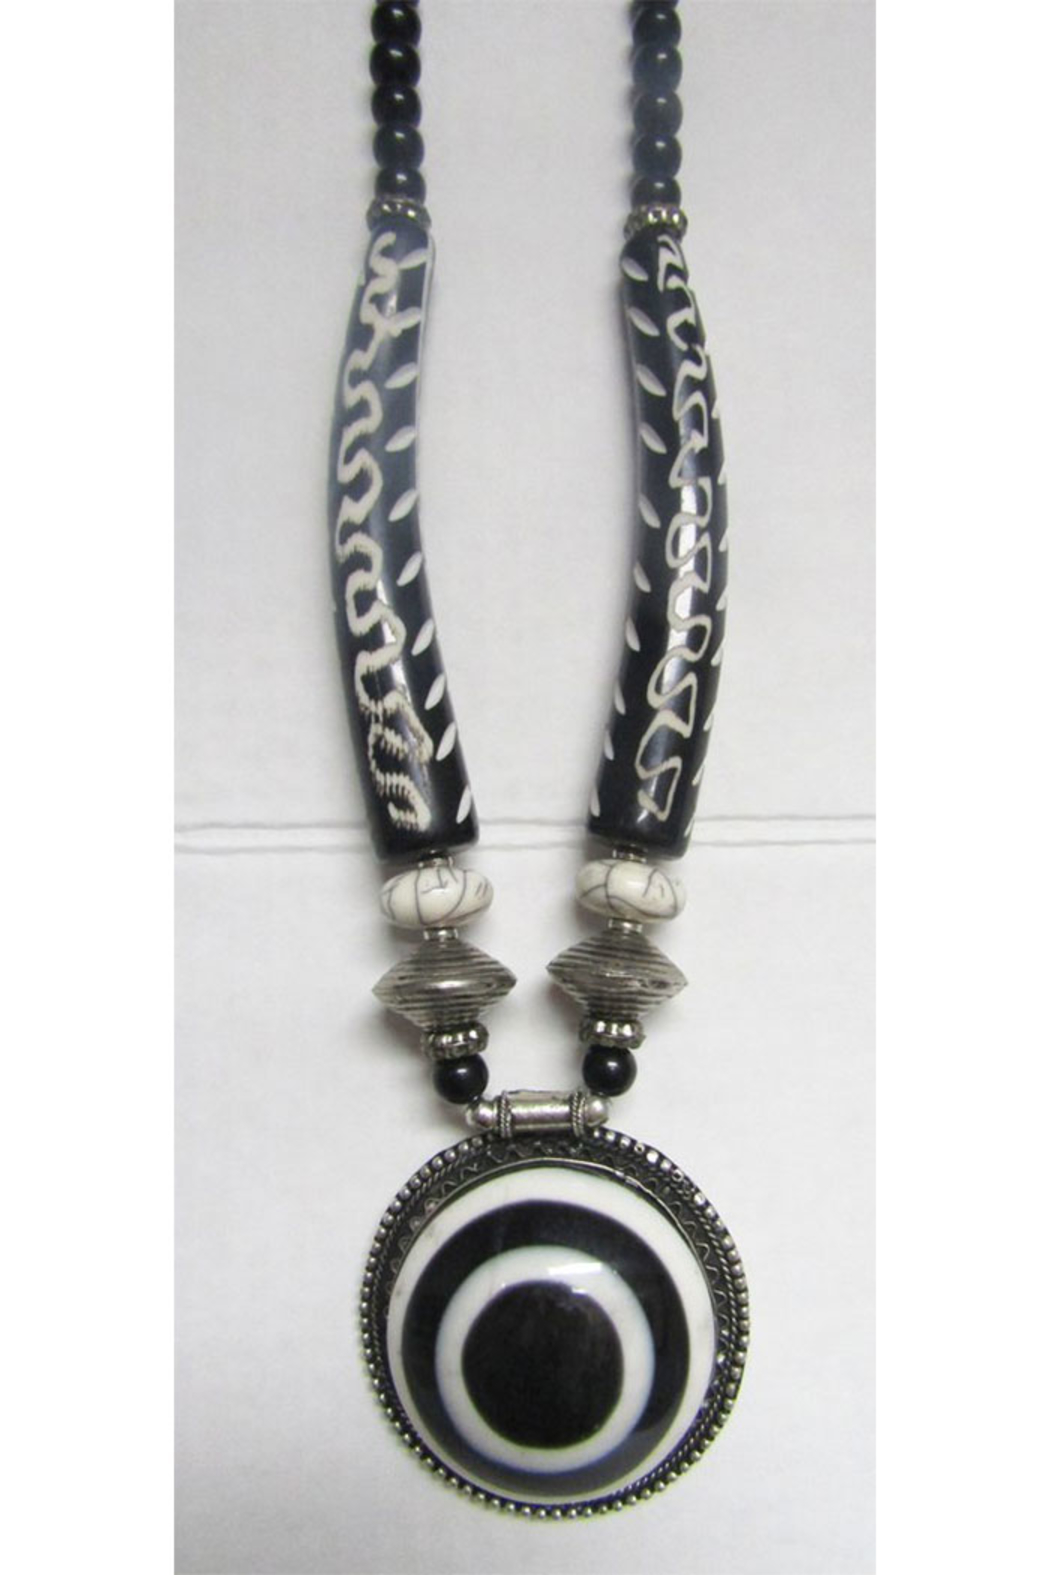 KIMBALS Tibetan Bohemian Style Beaded Necklace In Silver And Handcarved Beads - Main Image